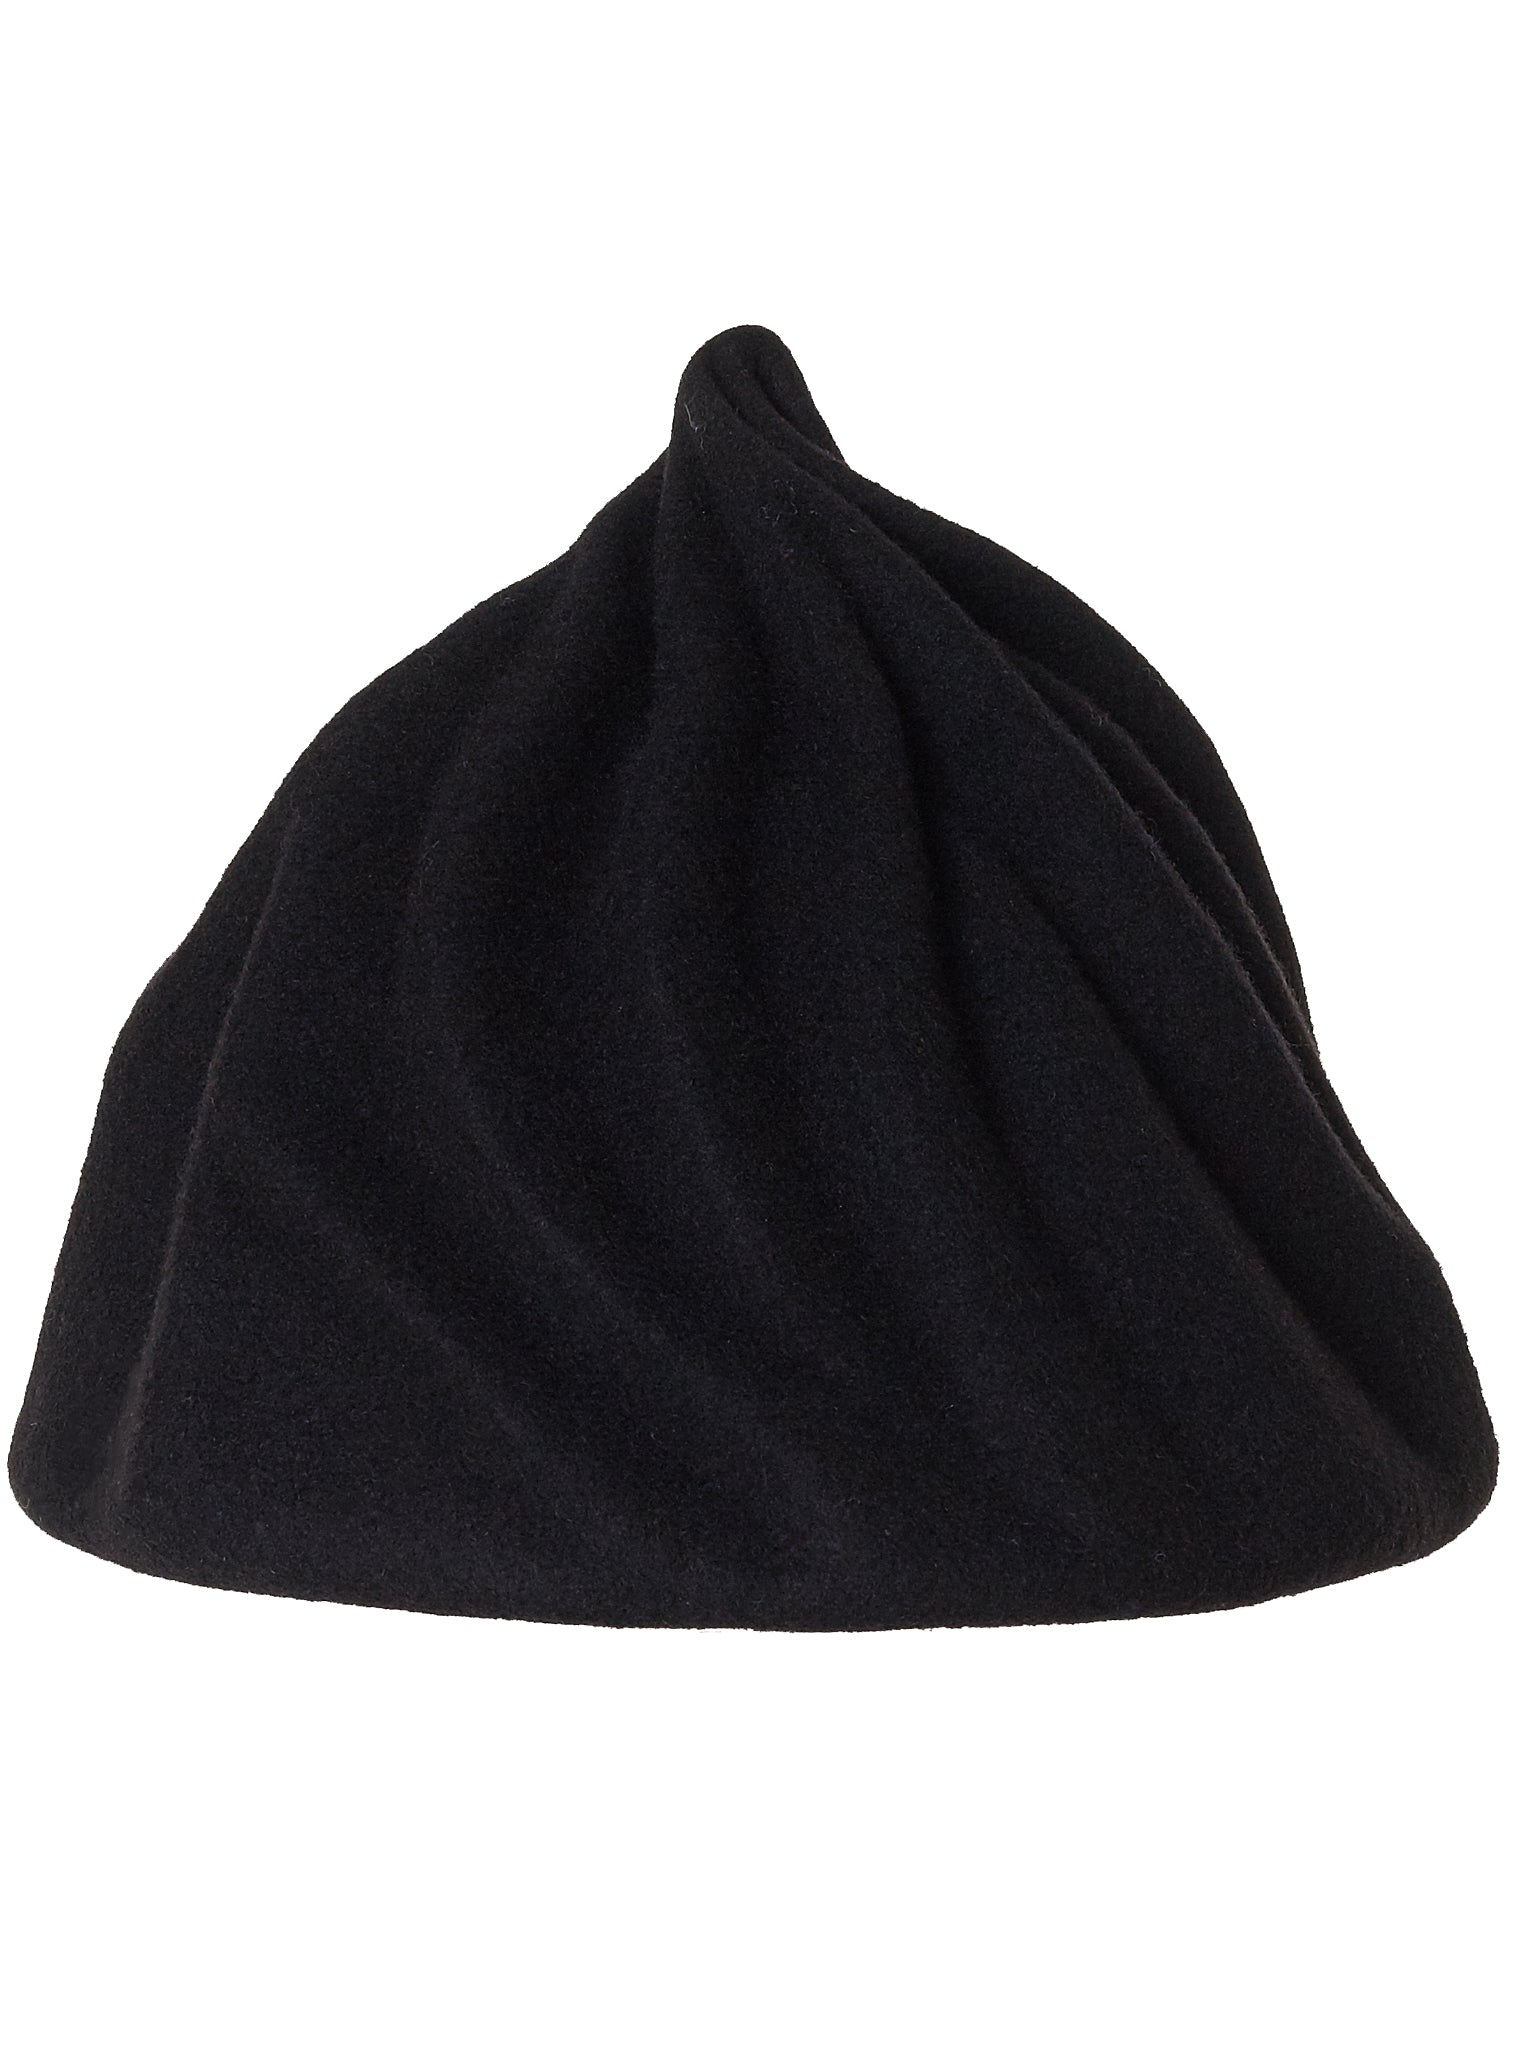 'Icicle' Twisted Crown Cap (009-BLACK)